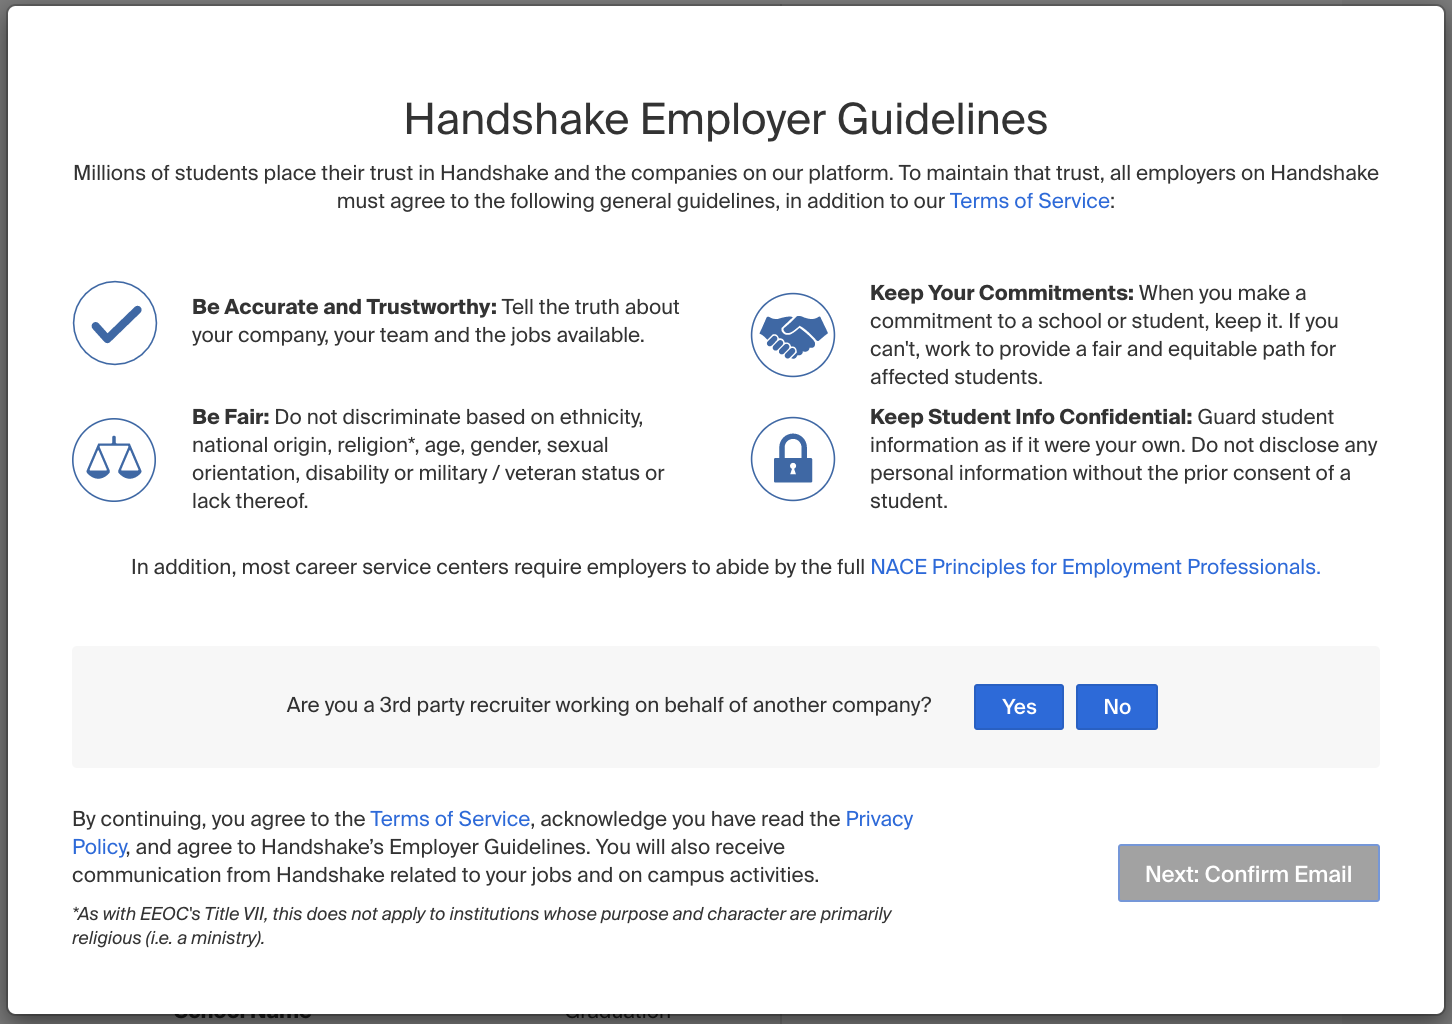 employer_guidelines.png